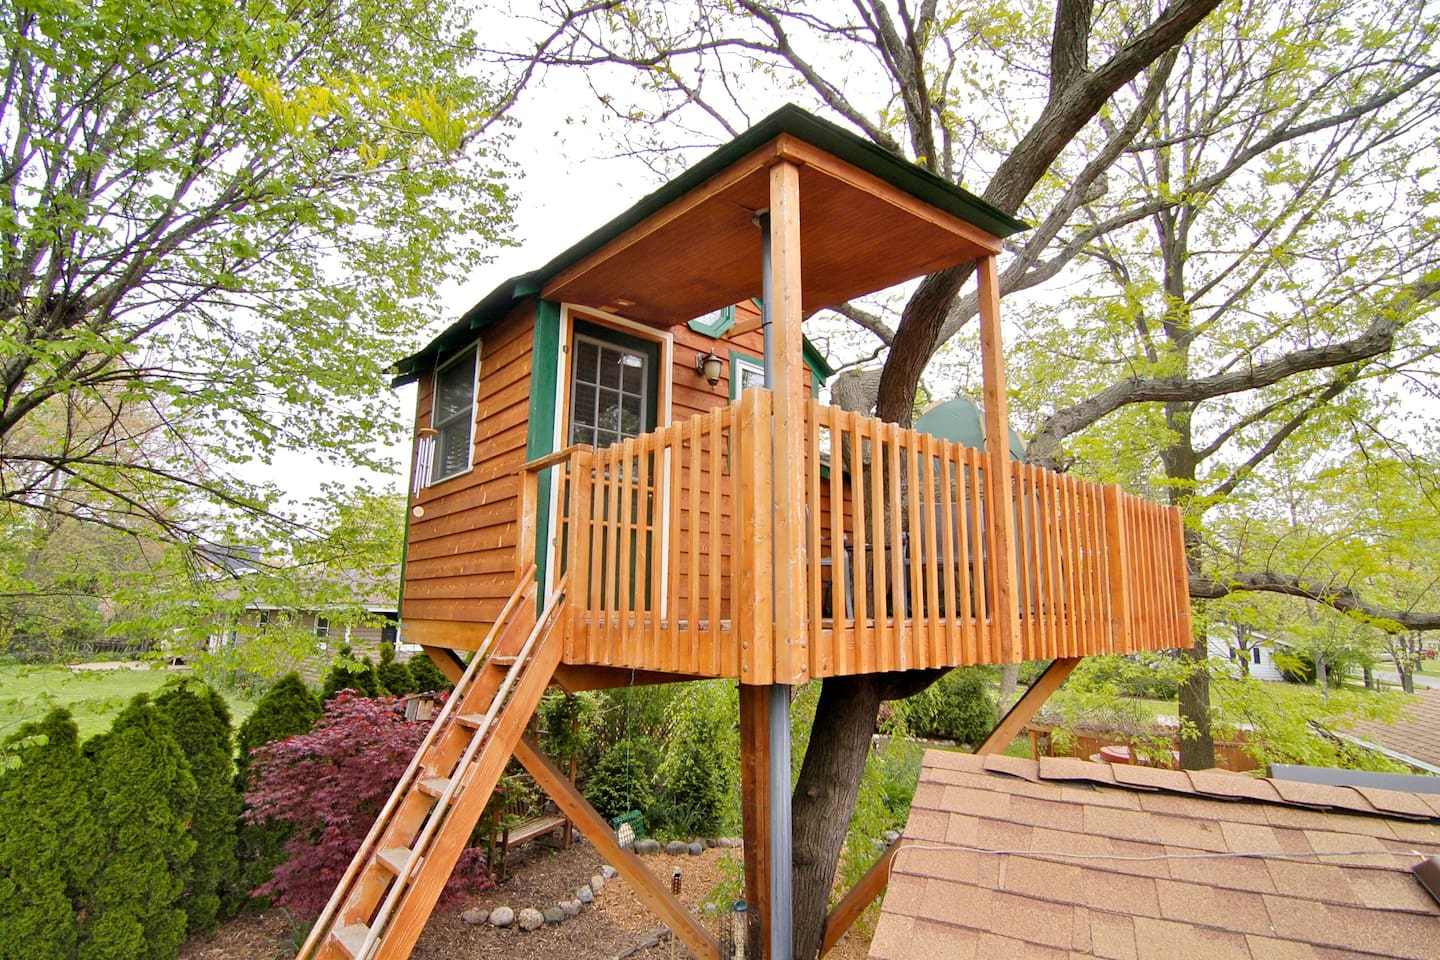 enchanted garden treehouse amenity treehouses for rent in